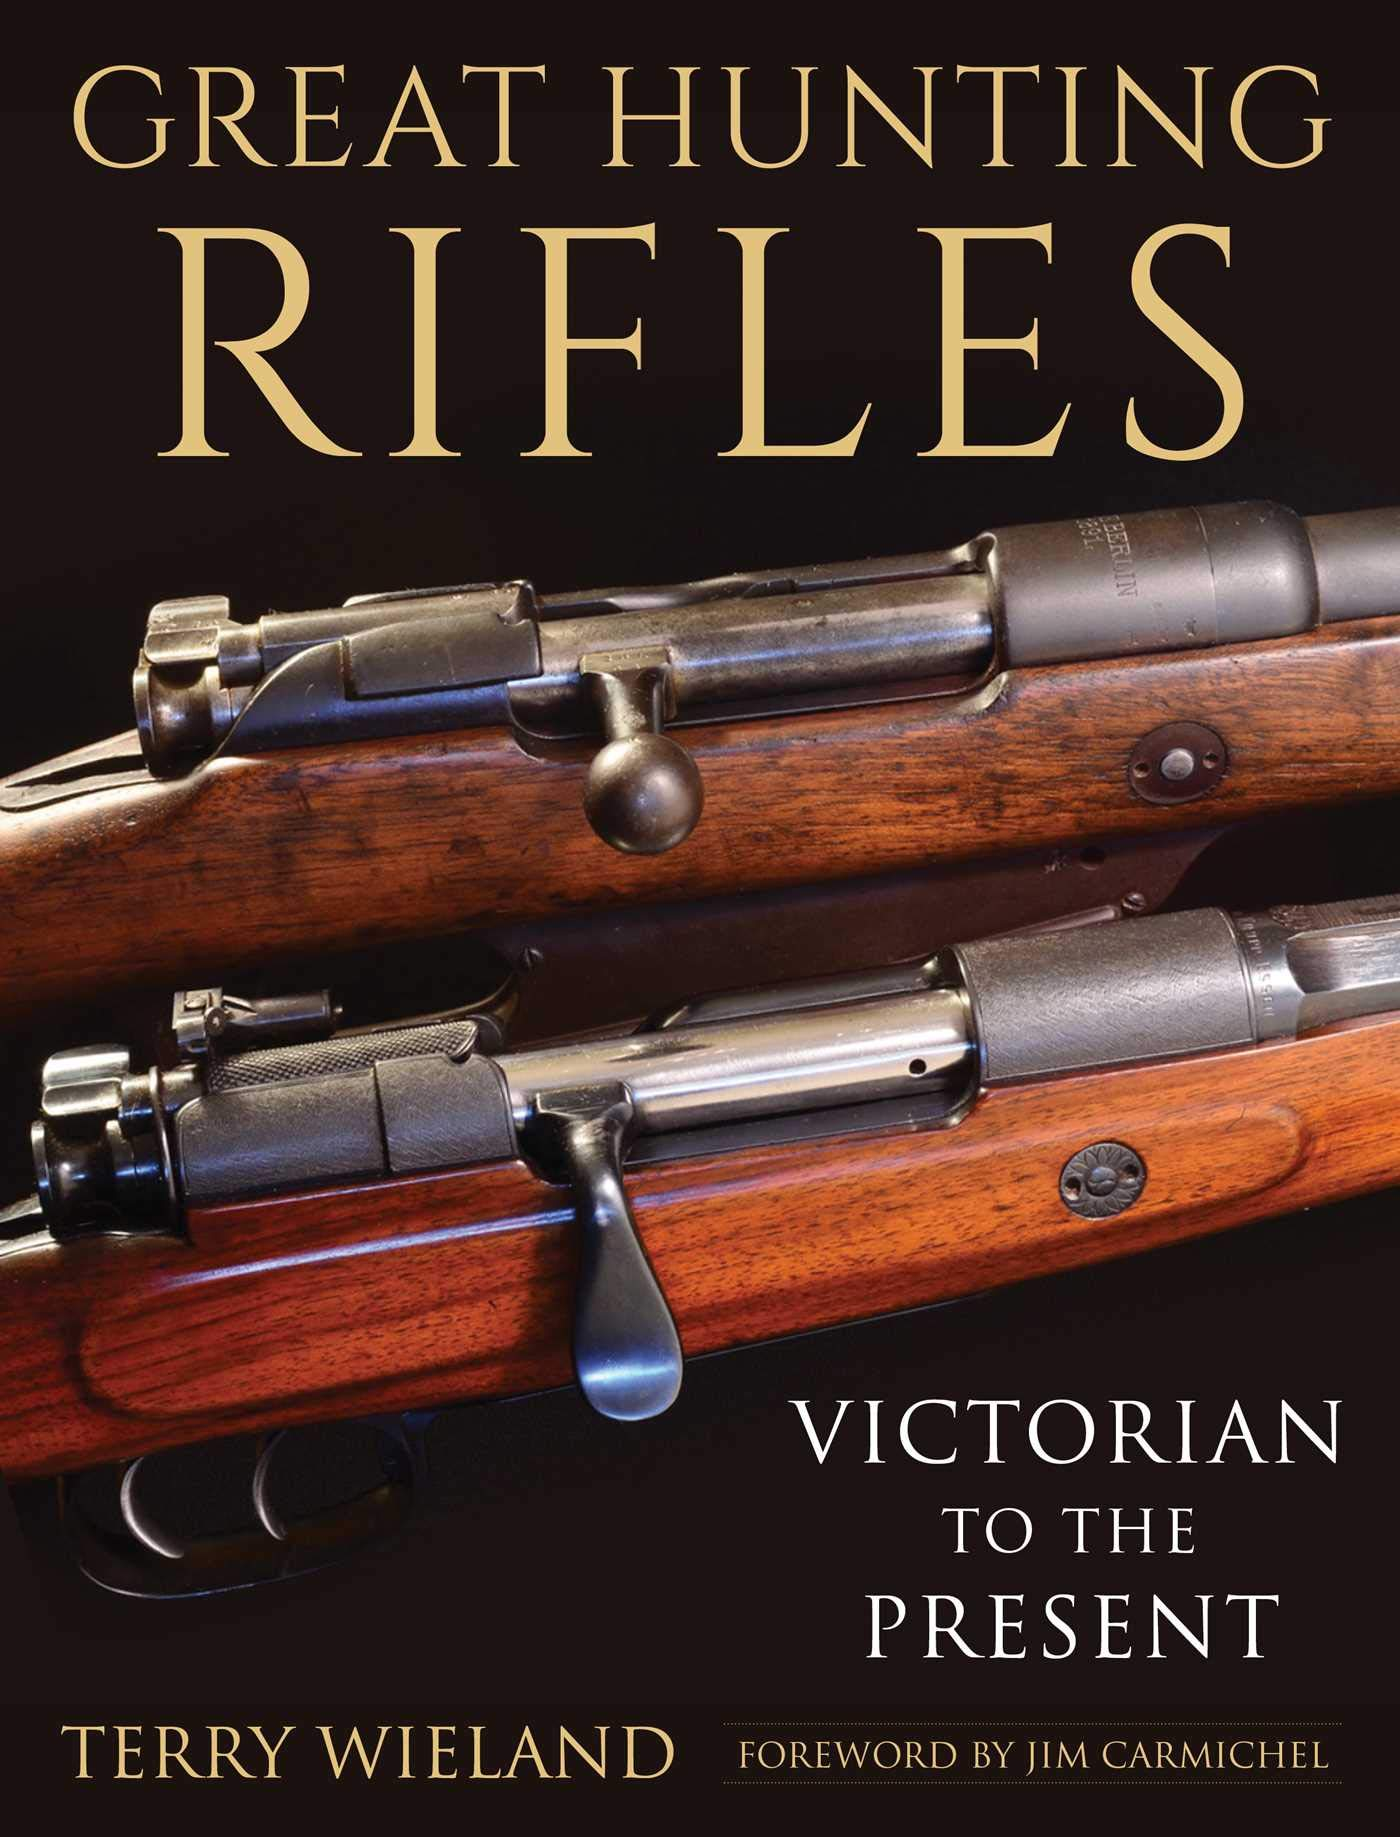 Great Hunting Rifles: Victorian to the Present Hardcover – October 2, 2018 Terry Wieland Jim Carmichel Skyhorse 1510731695